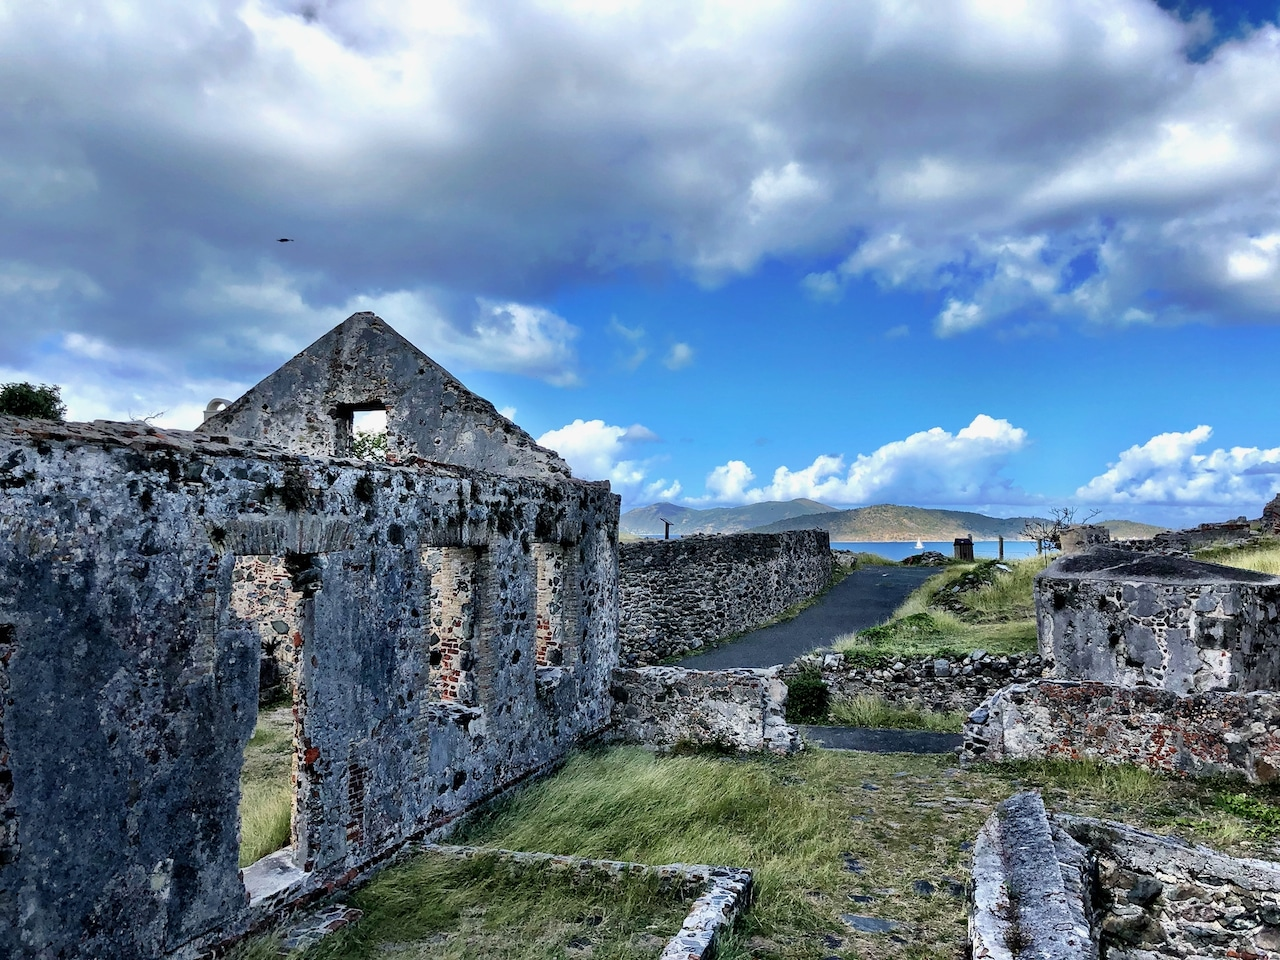 Sugar Mill Ruins on St John with crazy blue sky and clouds